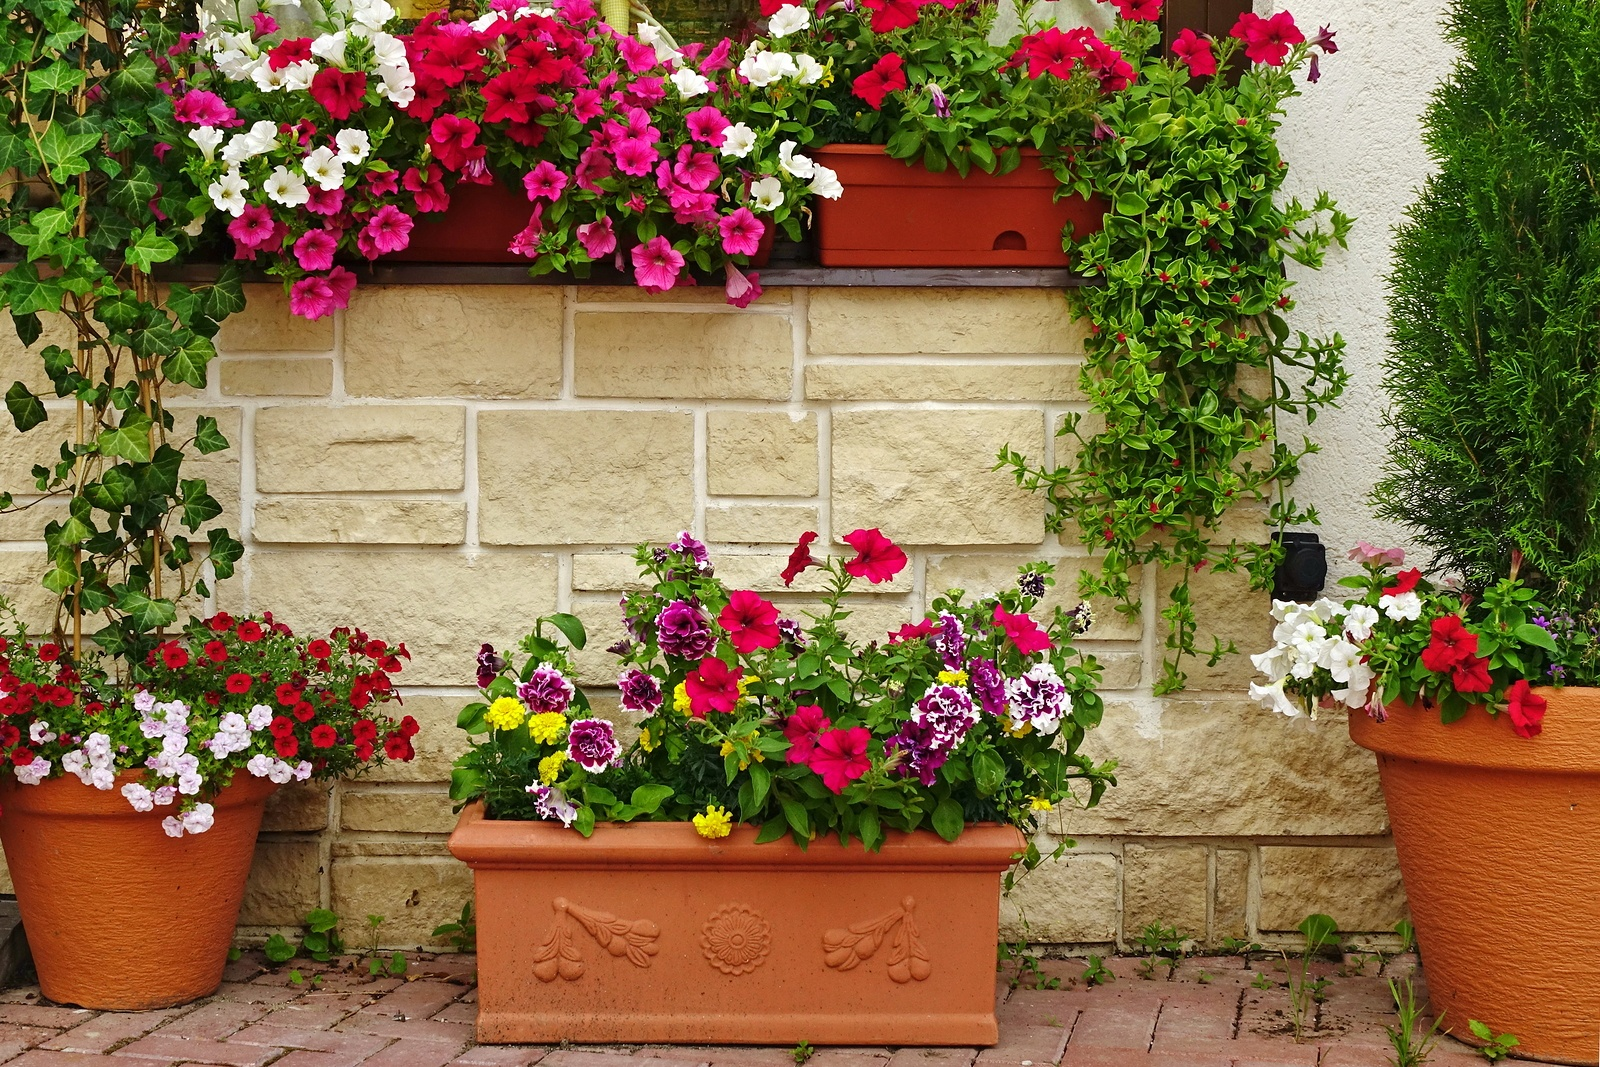 bigstock-Many-Clay-Flowerpots-With-Bloo-141046067.jpg